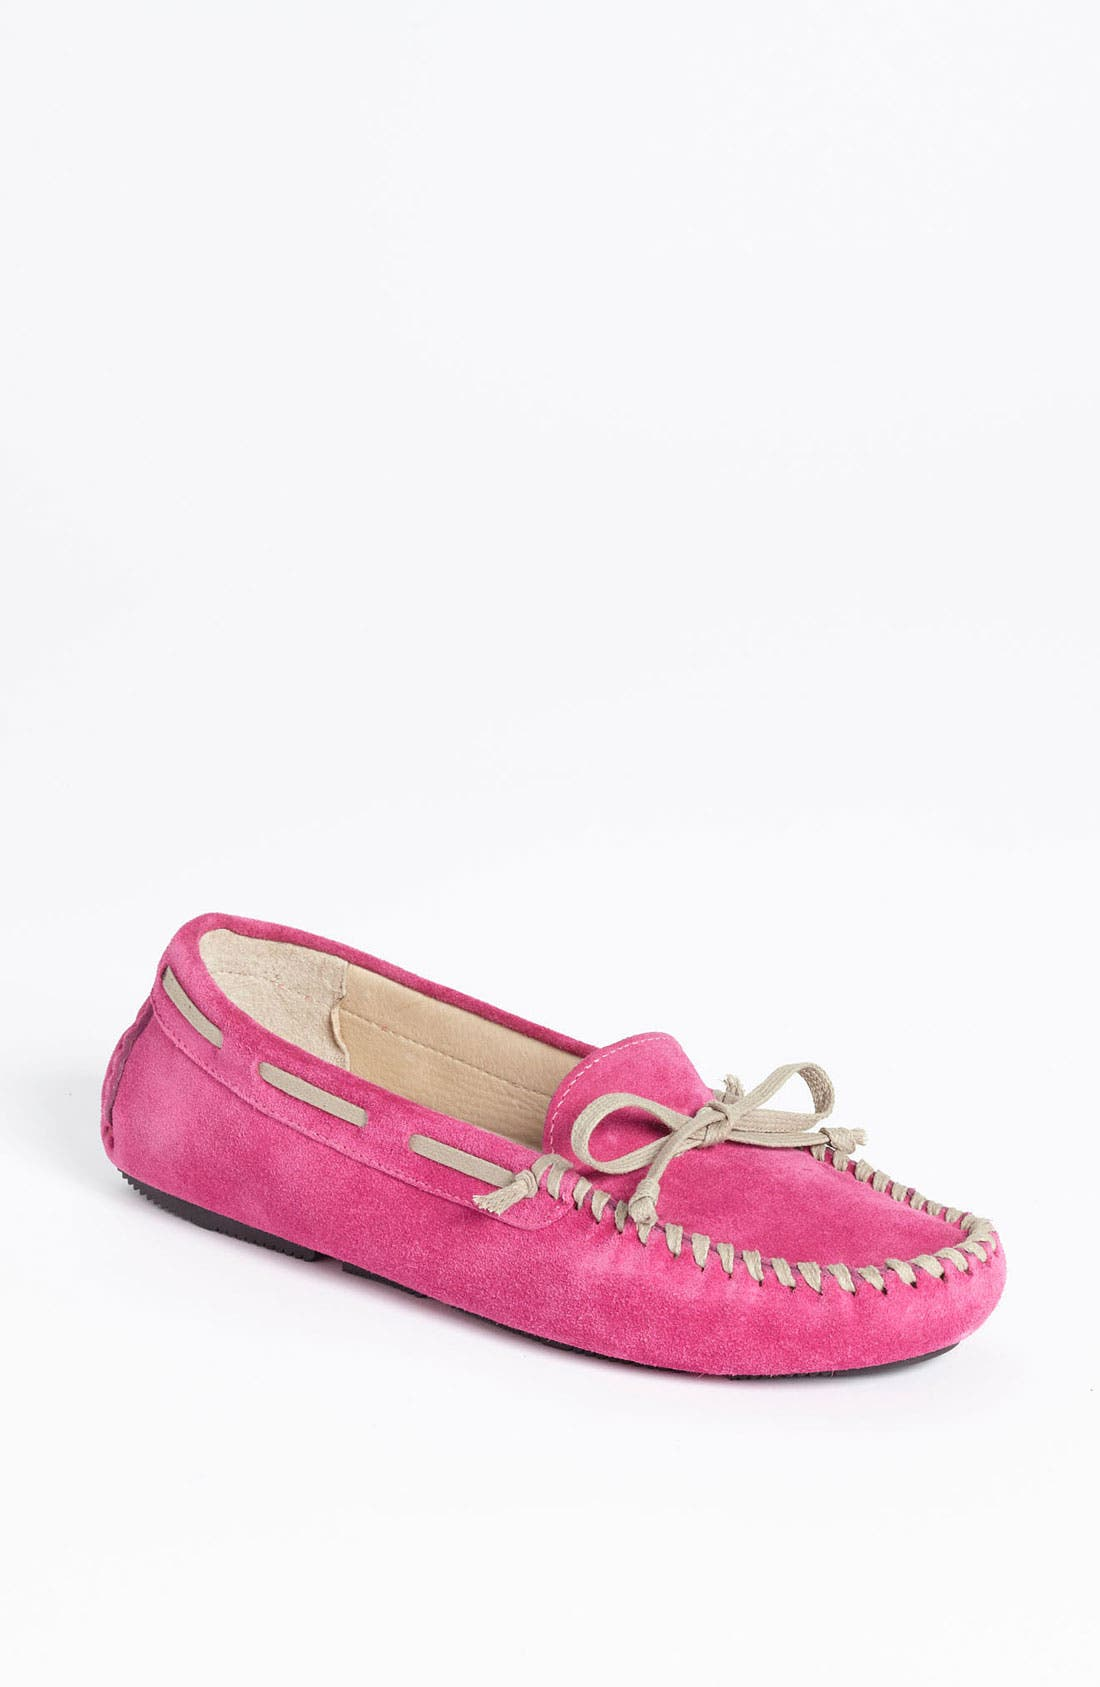 Alternate Image 1 Selected - Vera Wang Footwear 'Dorian' Loafer